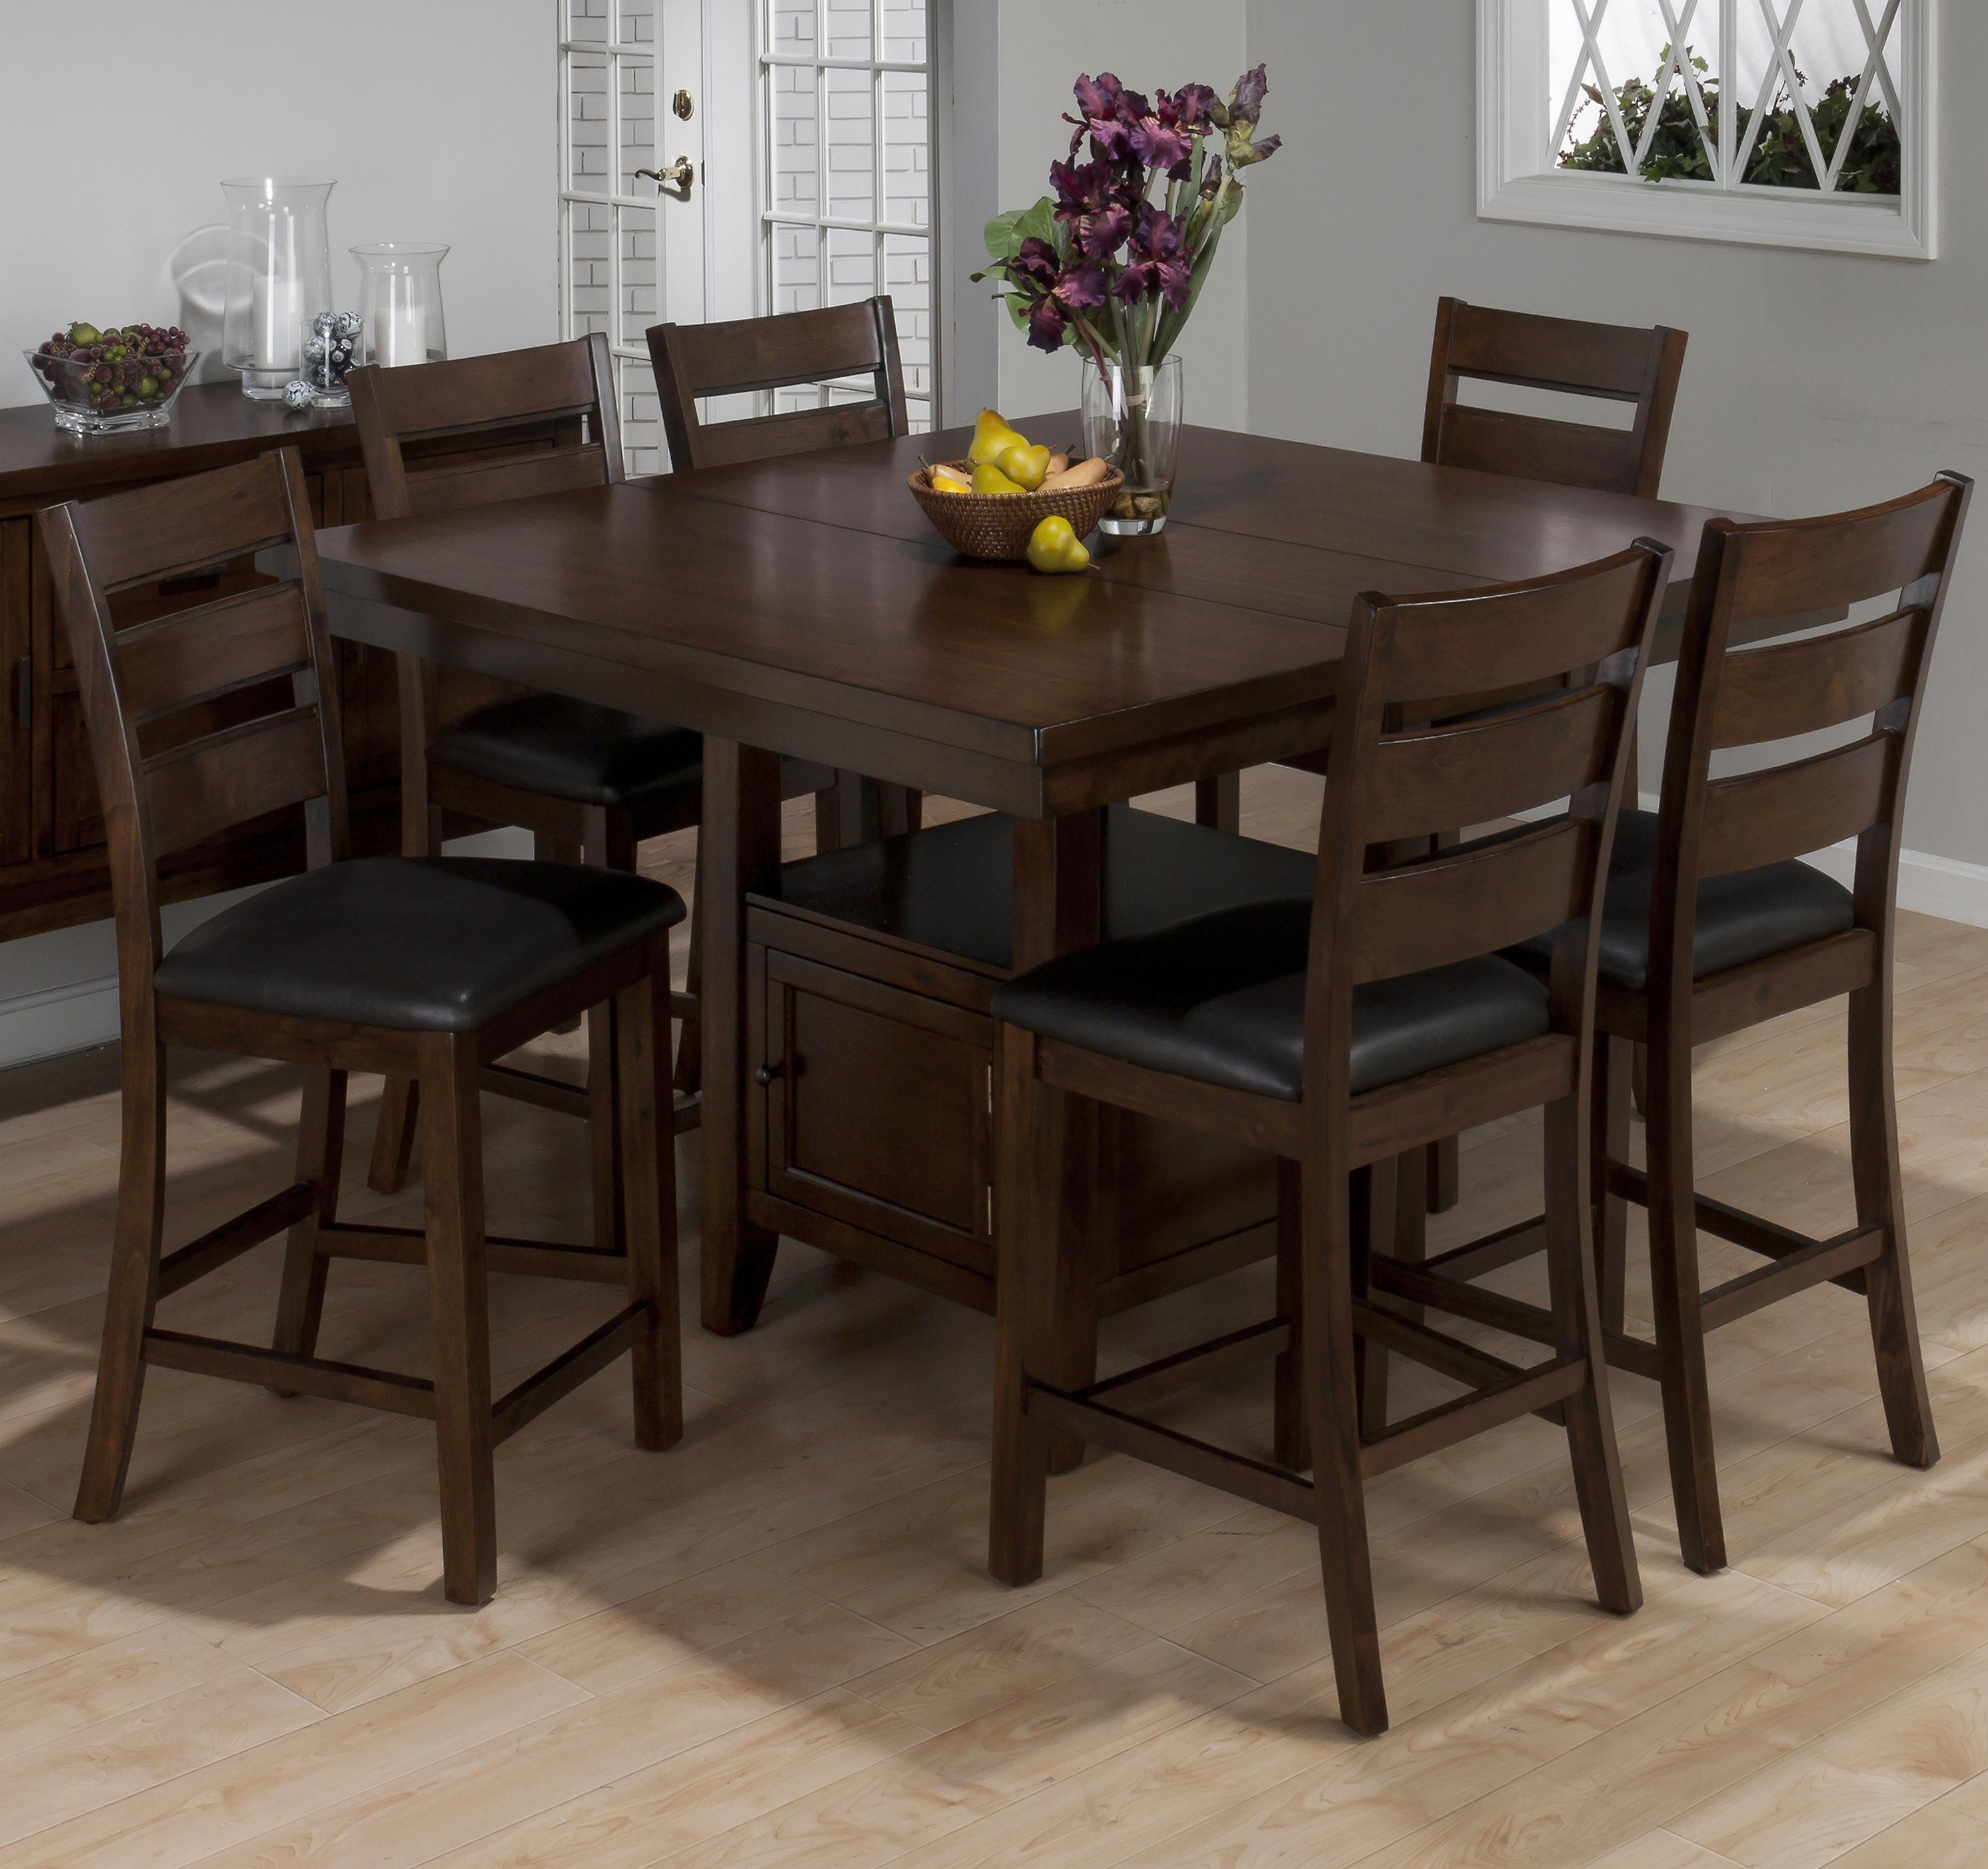 7 Piece Counter Height Dining Set & 7 Piece Counter Height Dining Set with Storage by Jofran | Wolf and ...